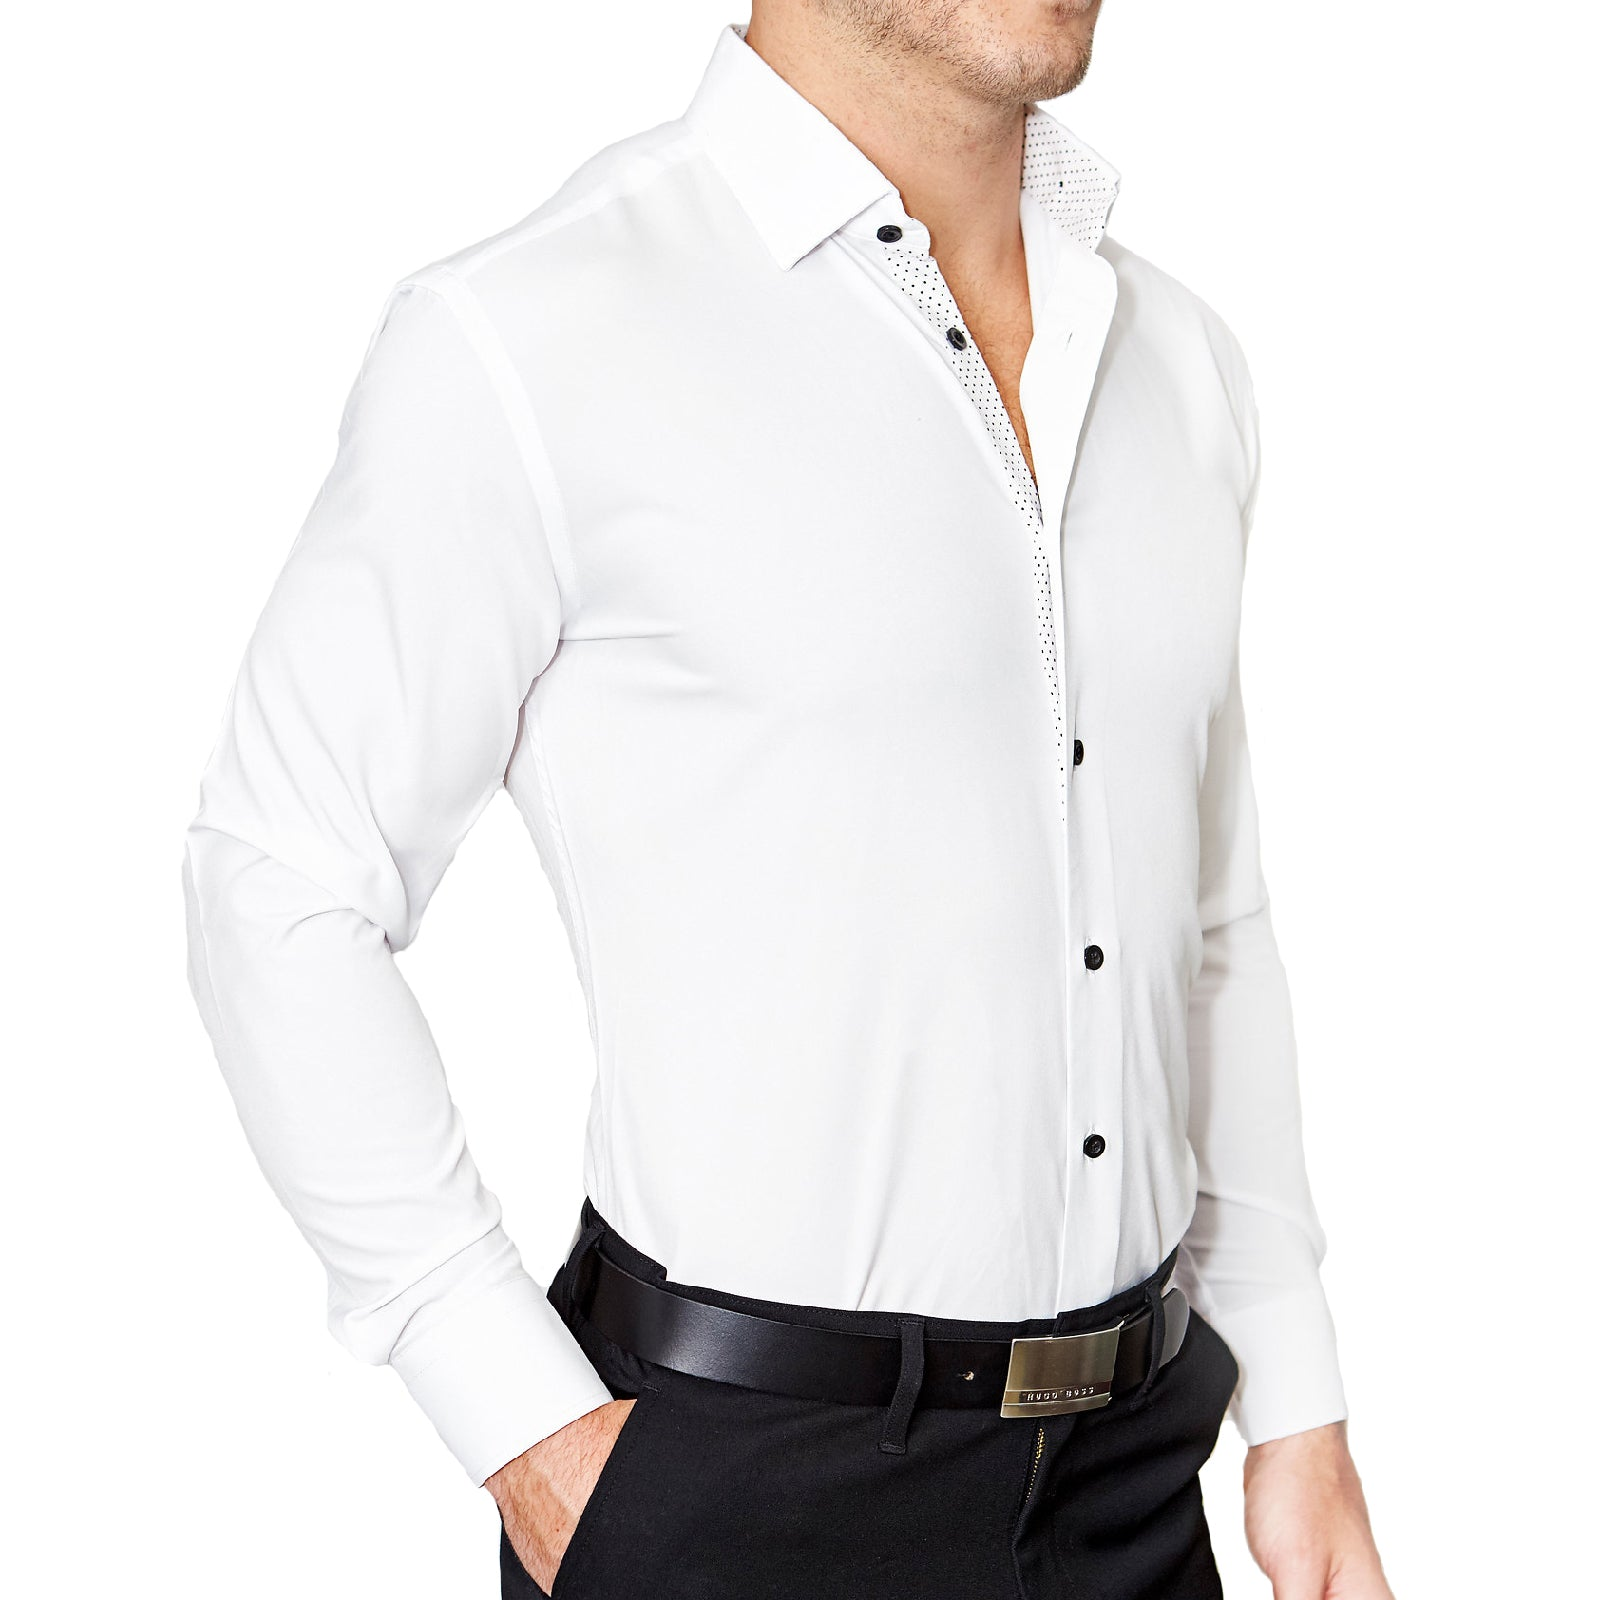 Athletic Fit Dress Shirts Tagged